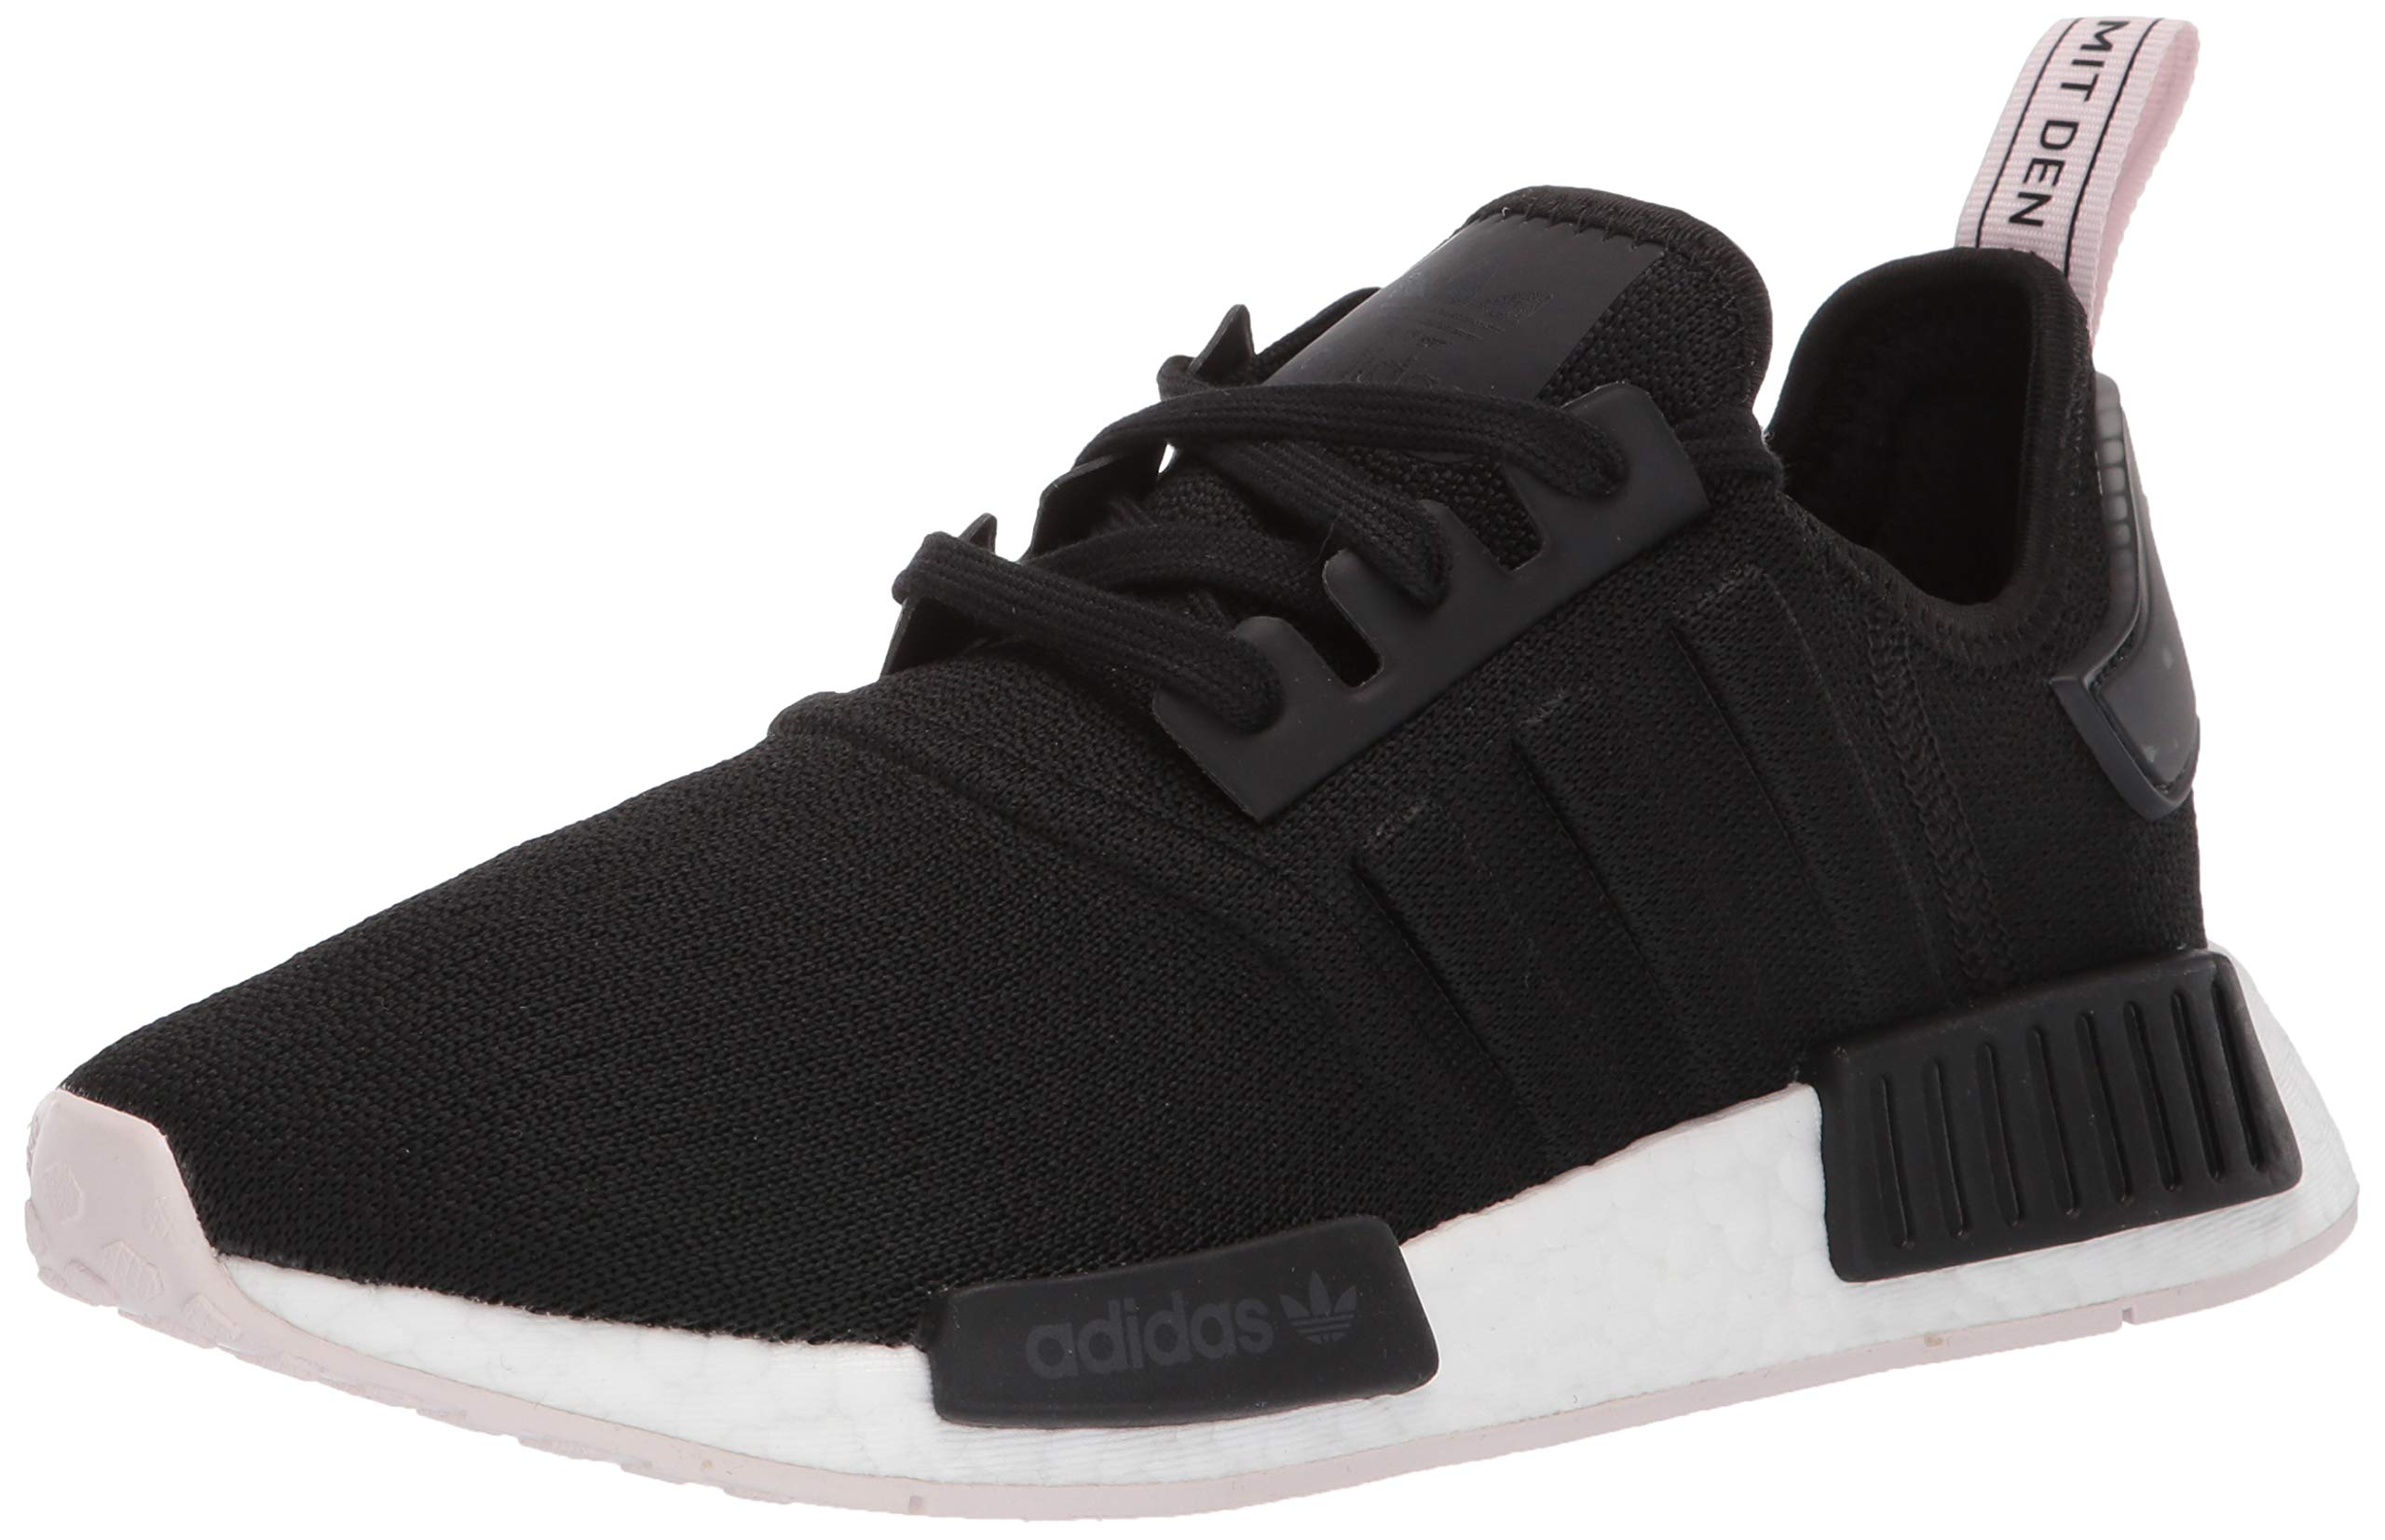 adidas Originals Women's NMD_R1 Running Shoe Black/Orchid Tint, 5 M US